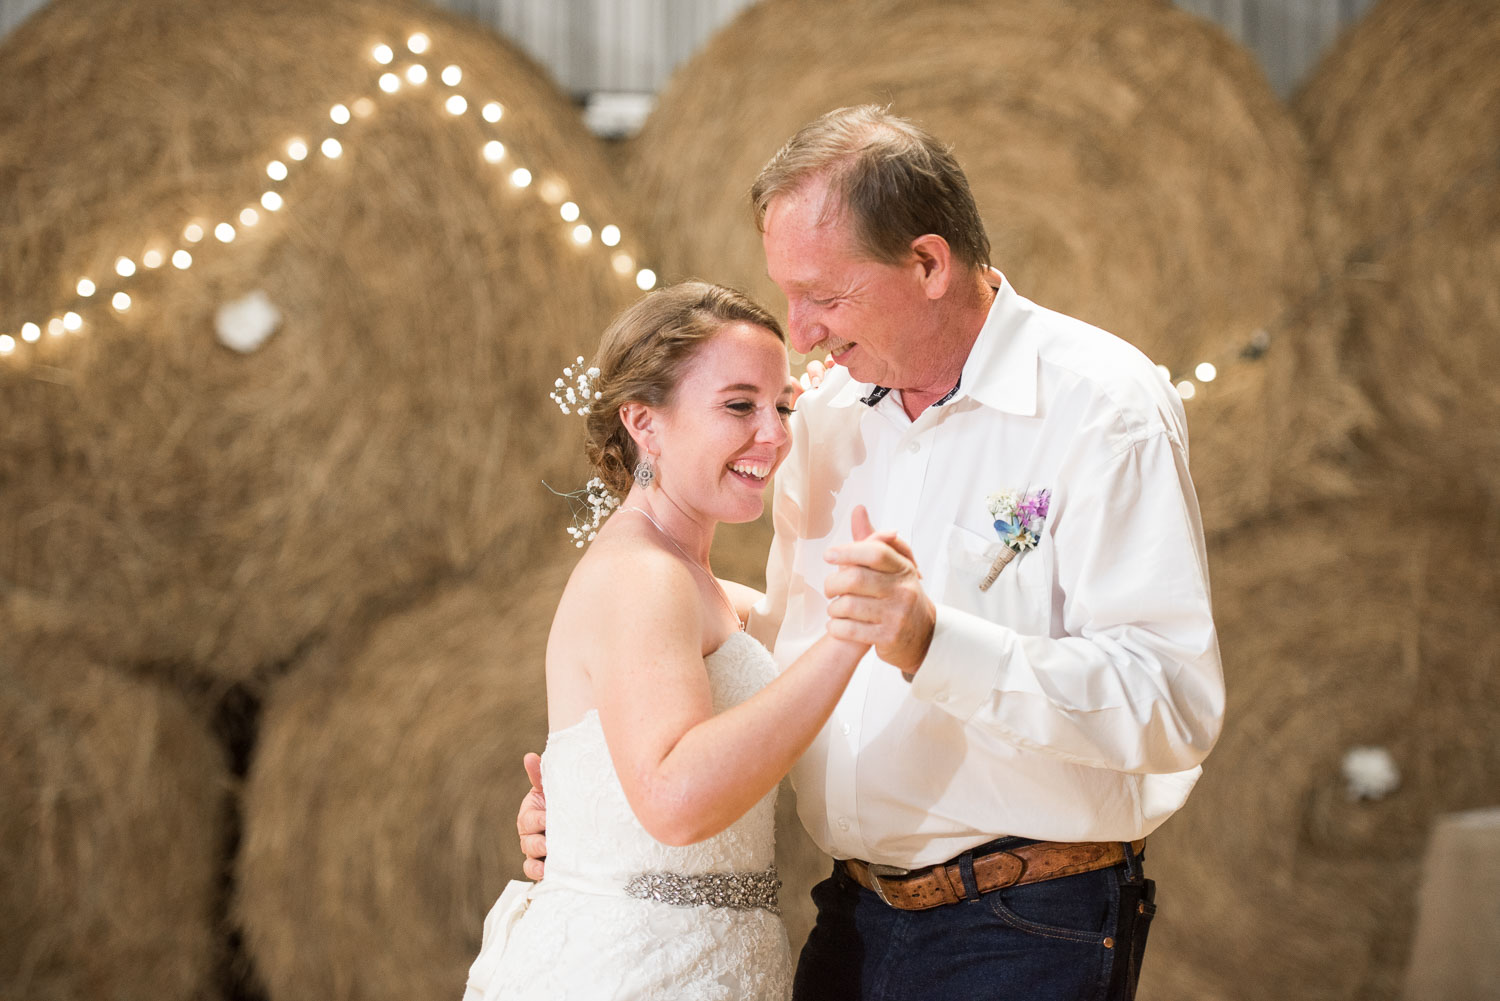 109 bride and father share their first dance.jpg